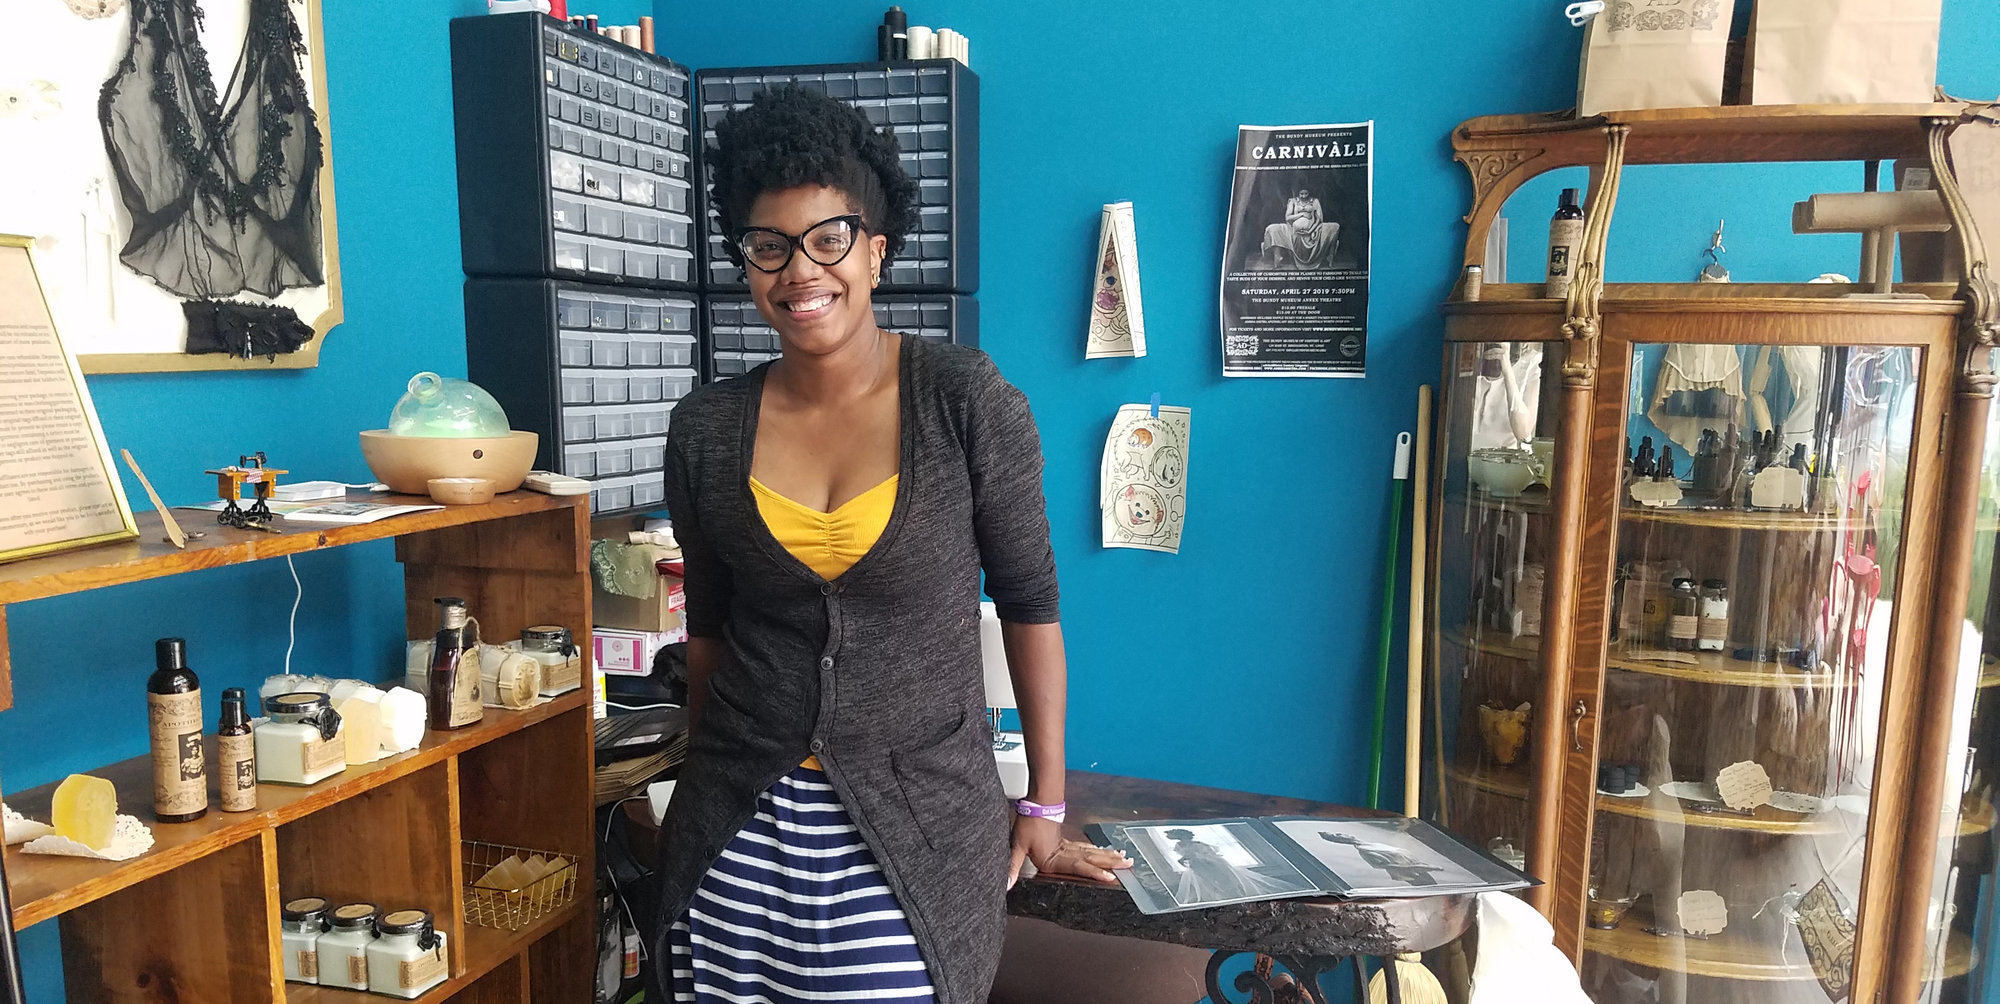 Adrina Dietra stands in her shop in Press Bay Alley. Dietra opened her business on June 27, bringing her luxury lingerie and homemade apothecary goods to downtown Ithaca. She said she loves providing products that attract a wide audience.